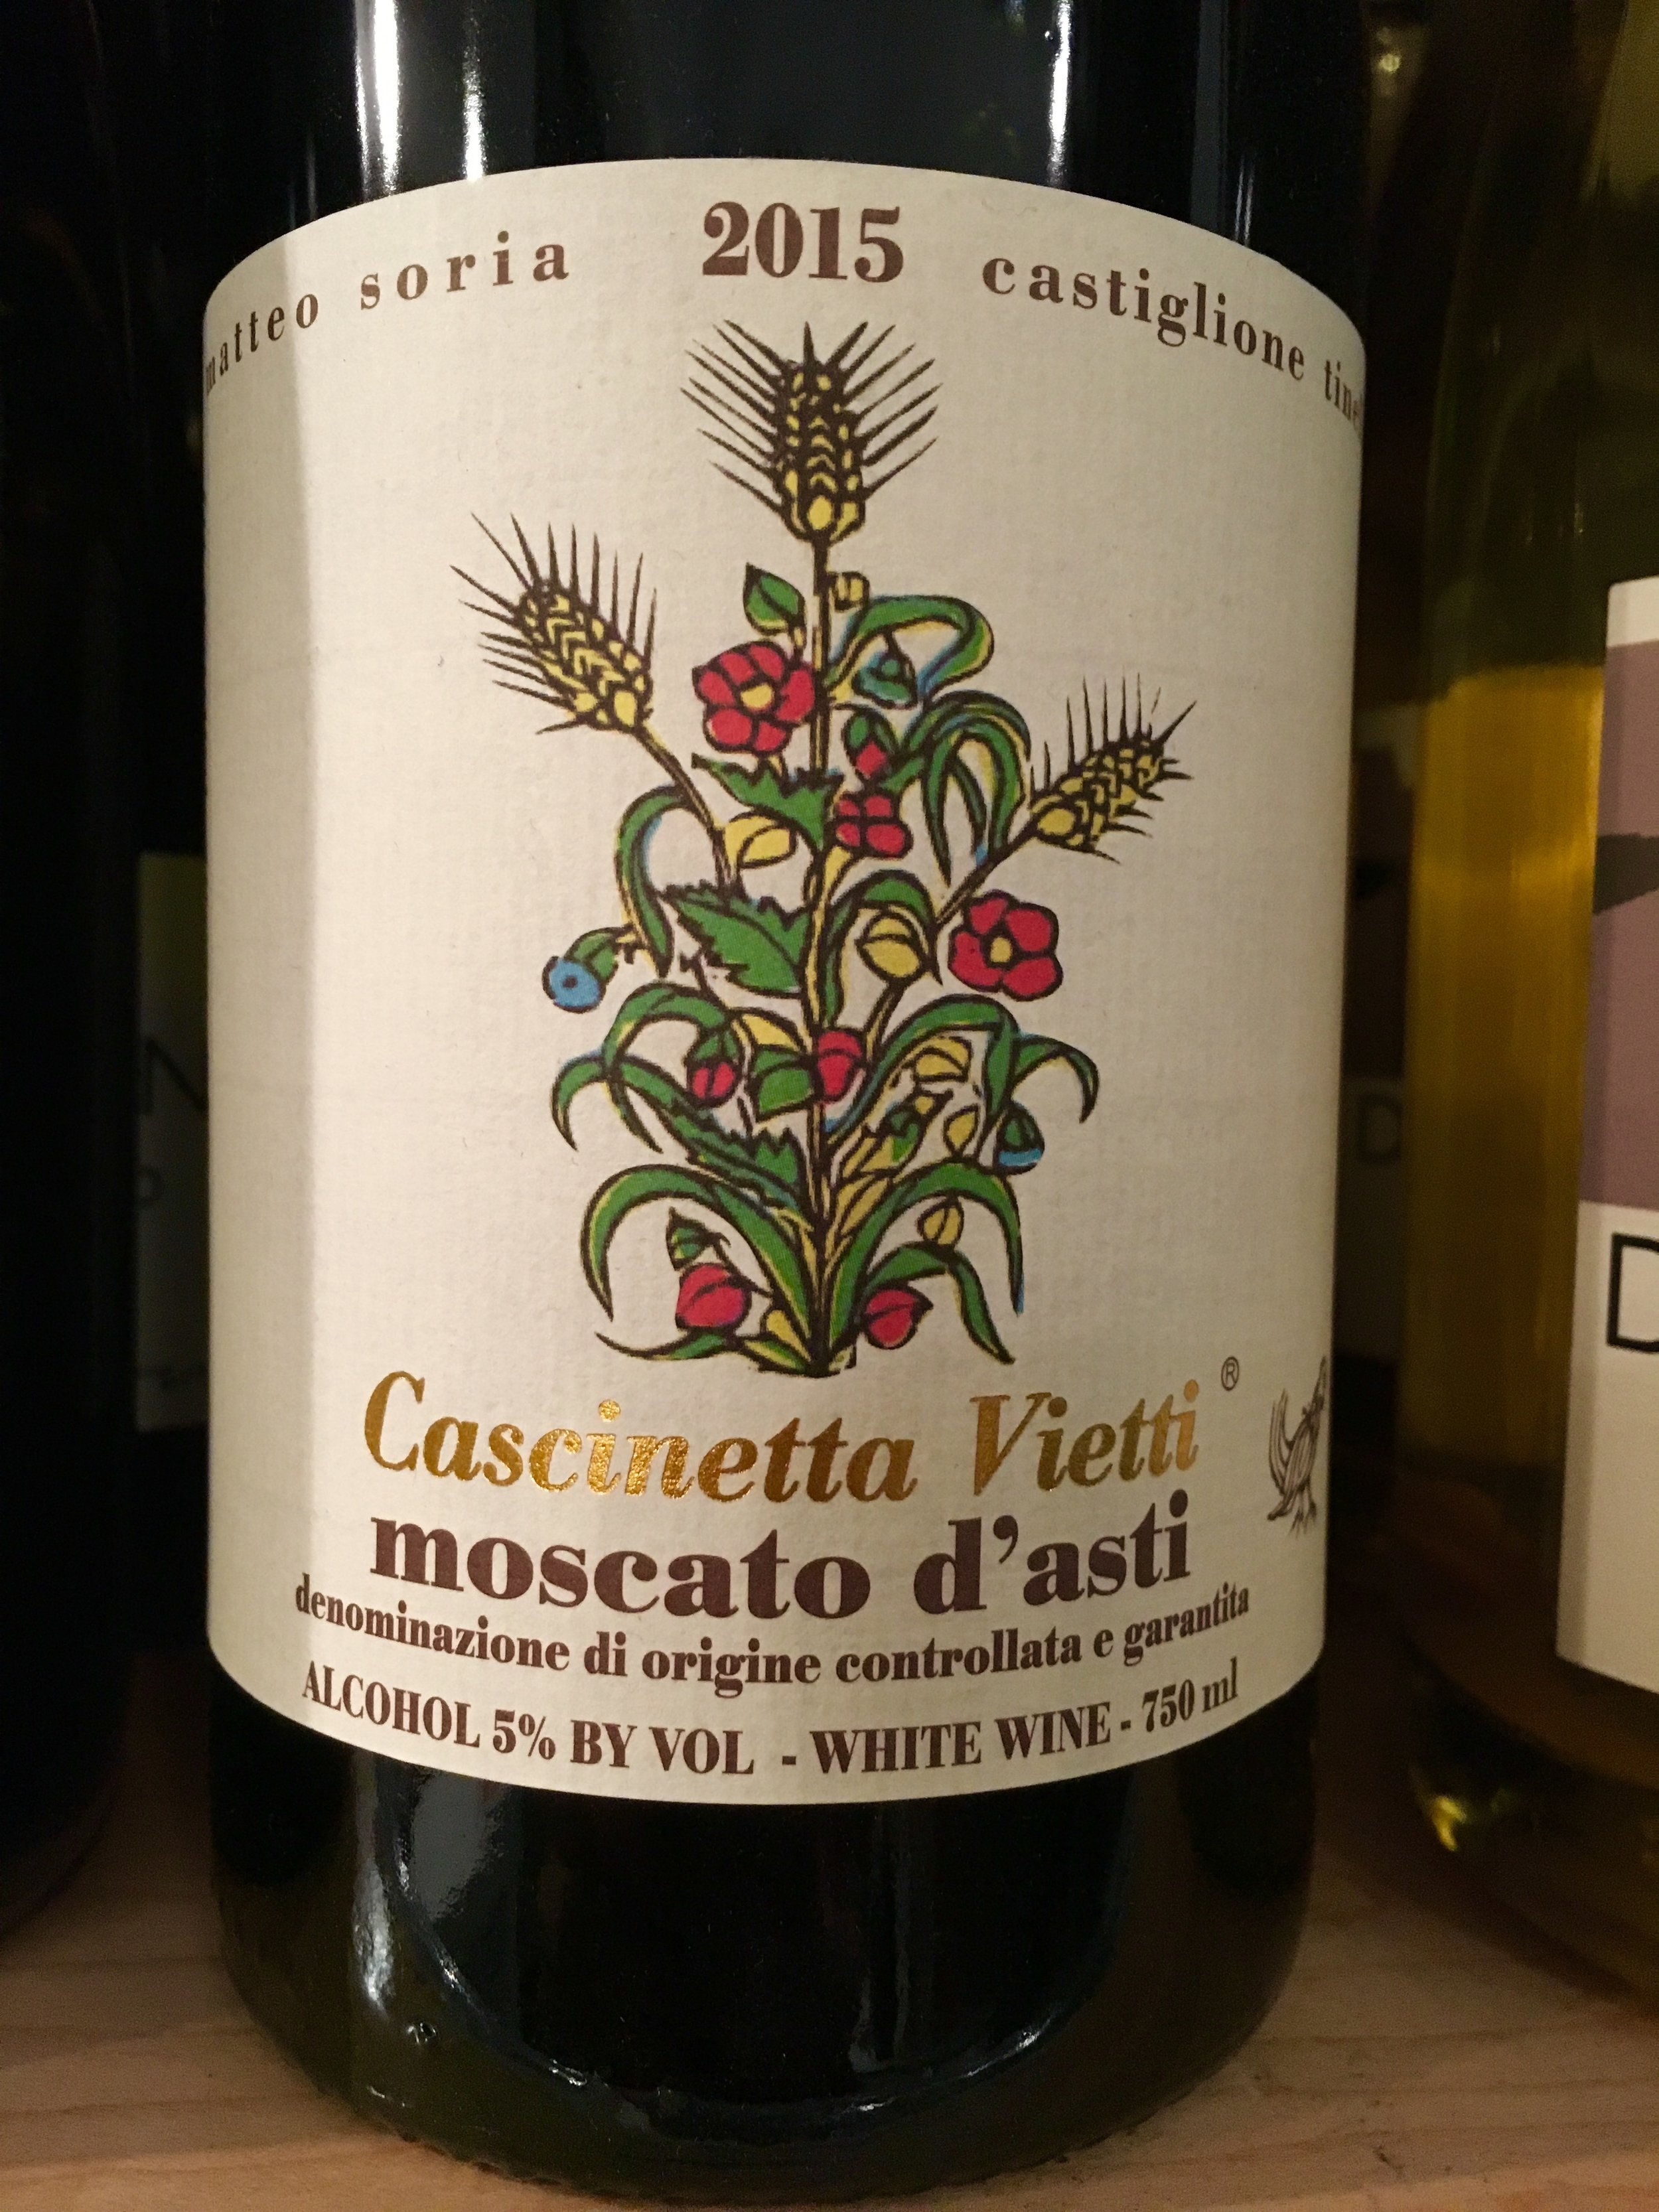 A beautiful label to go along with a beautiful wine!